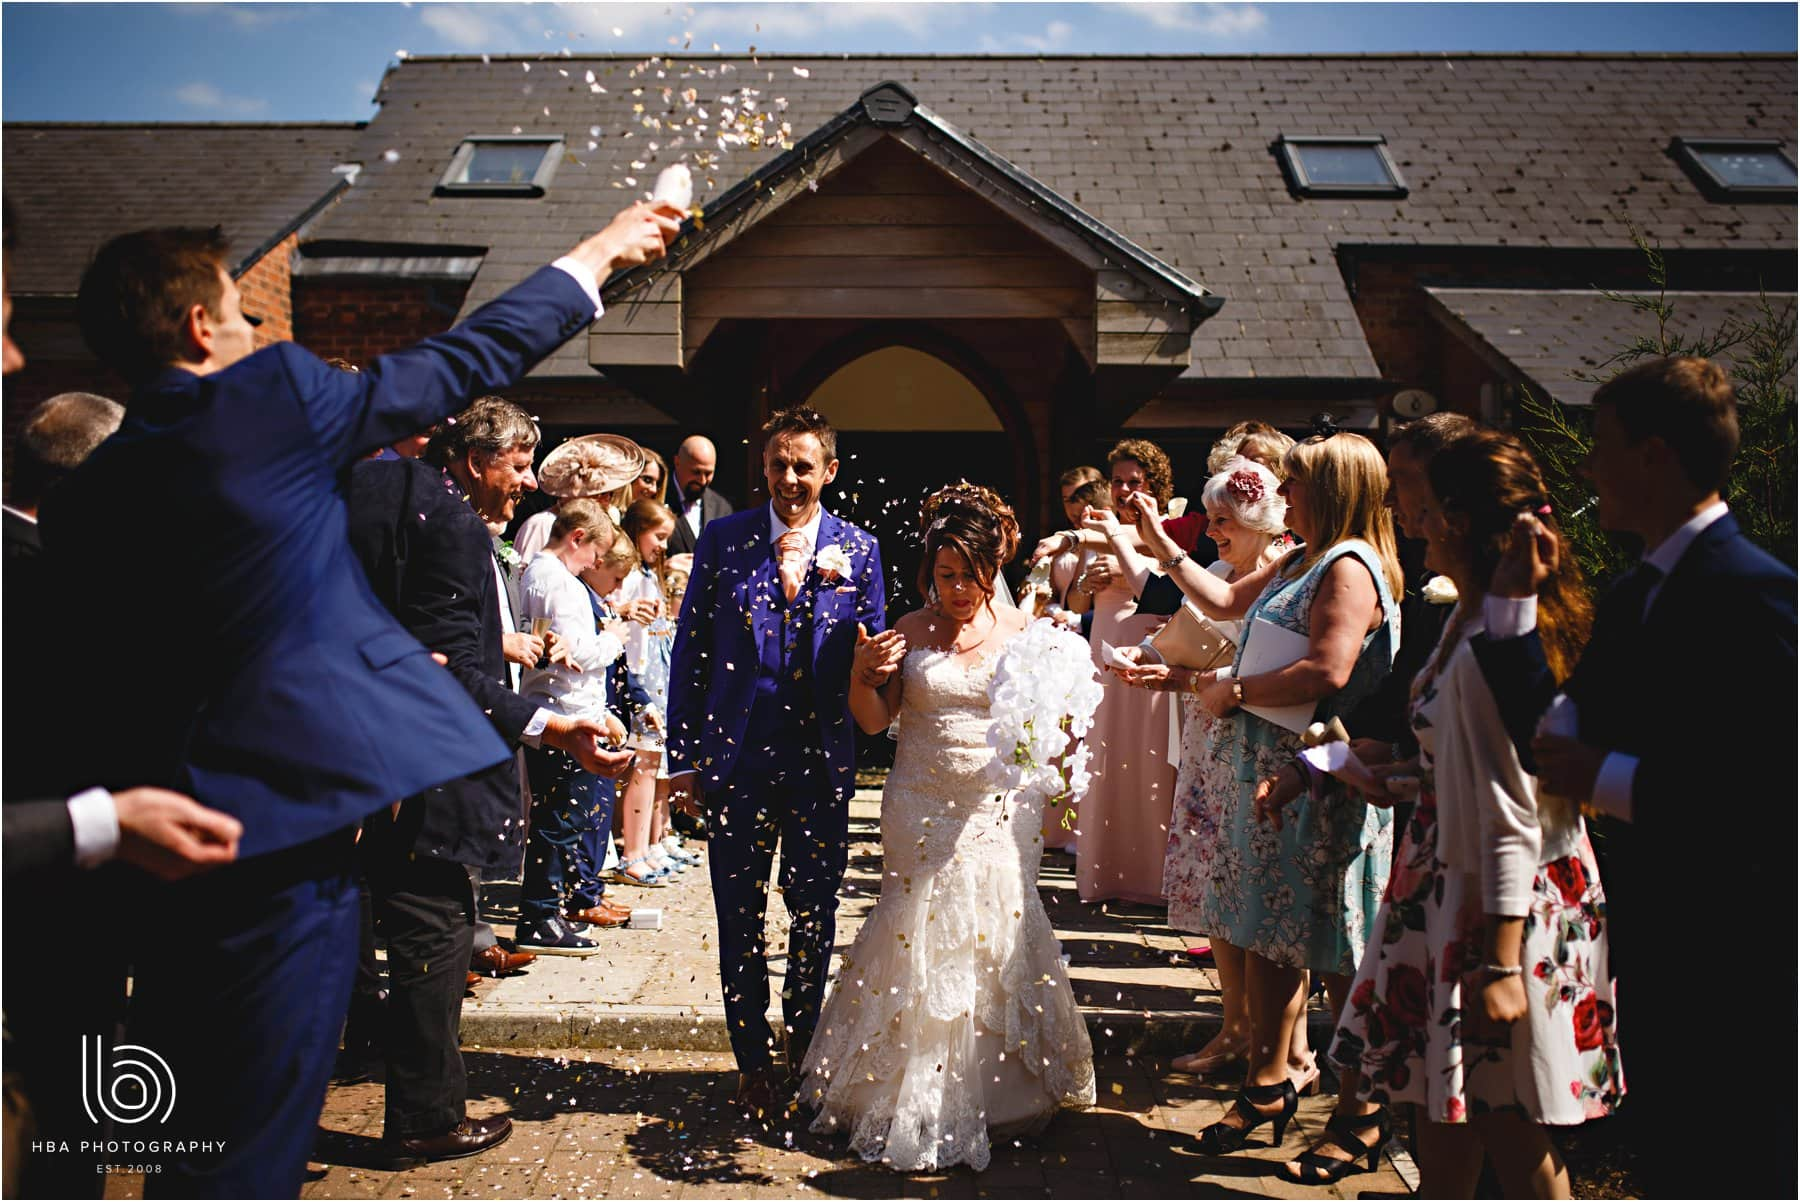 the bride & groom getting covered in confetti